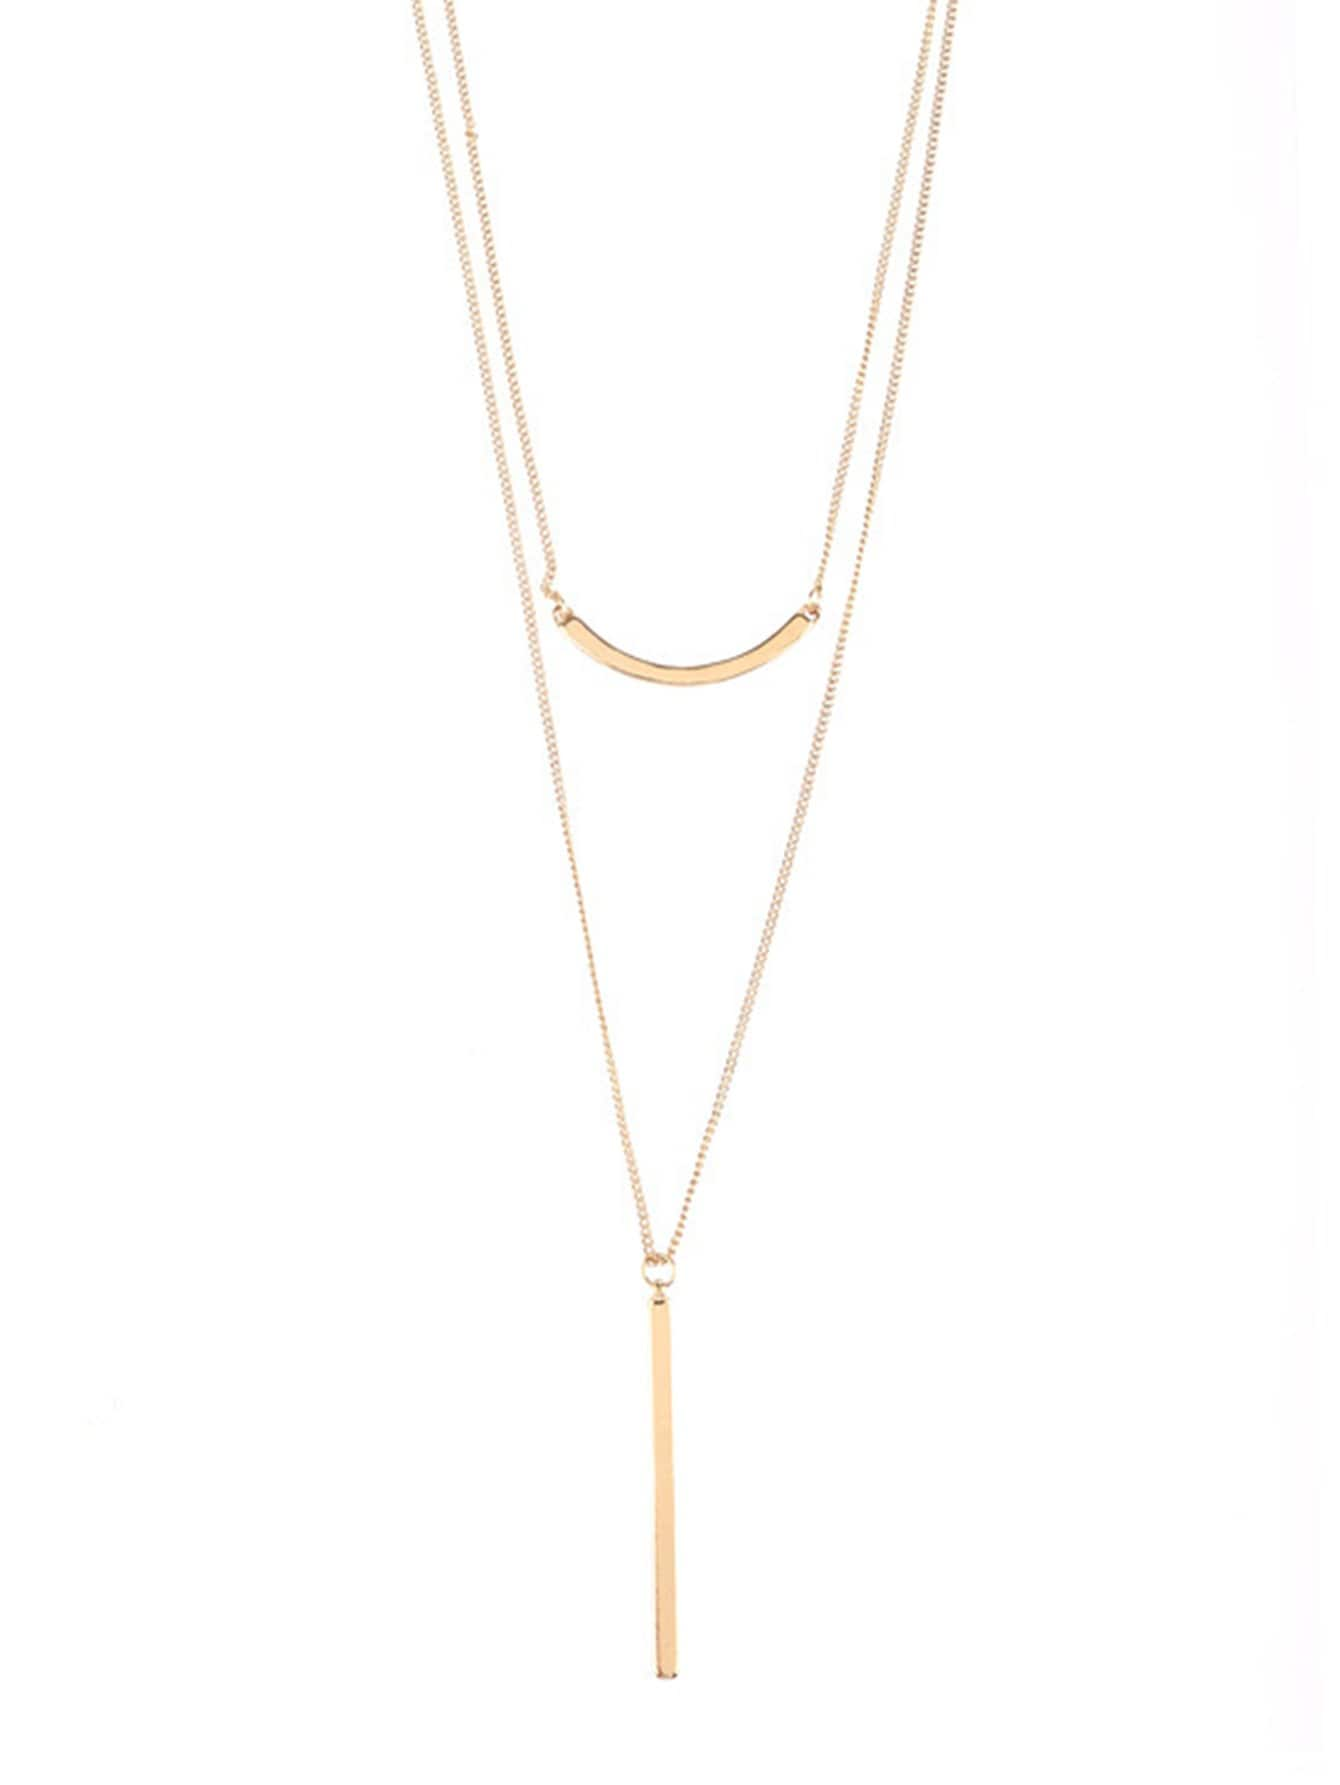 Bar Pendant Layered Chain Necklace cross pendant layered chain necklace